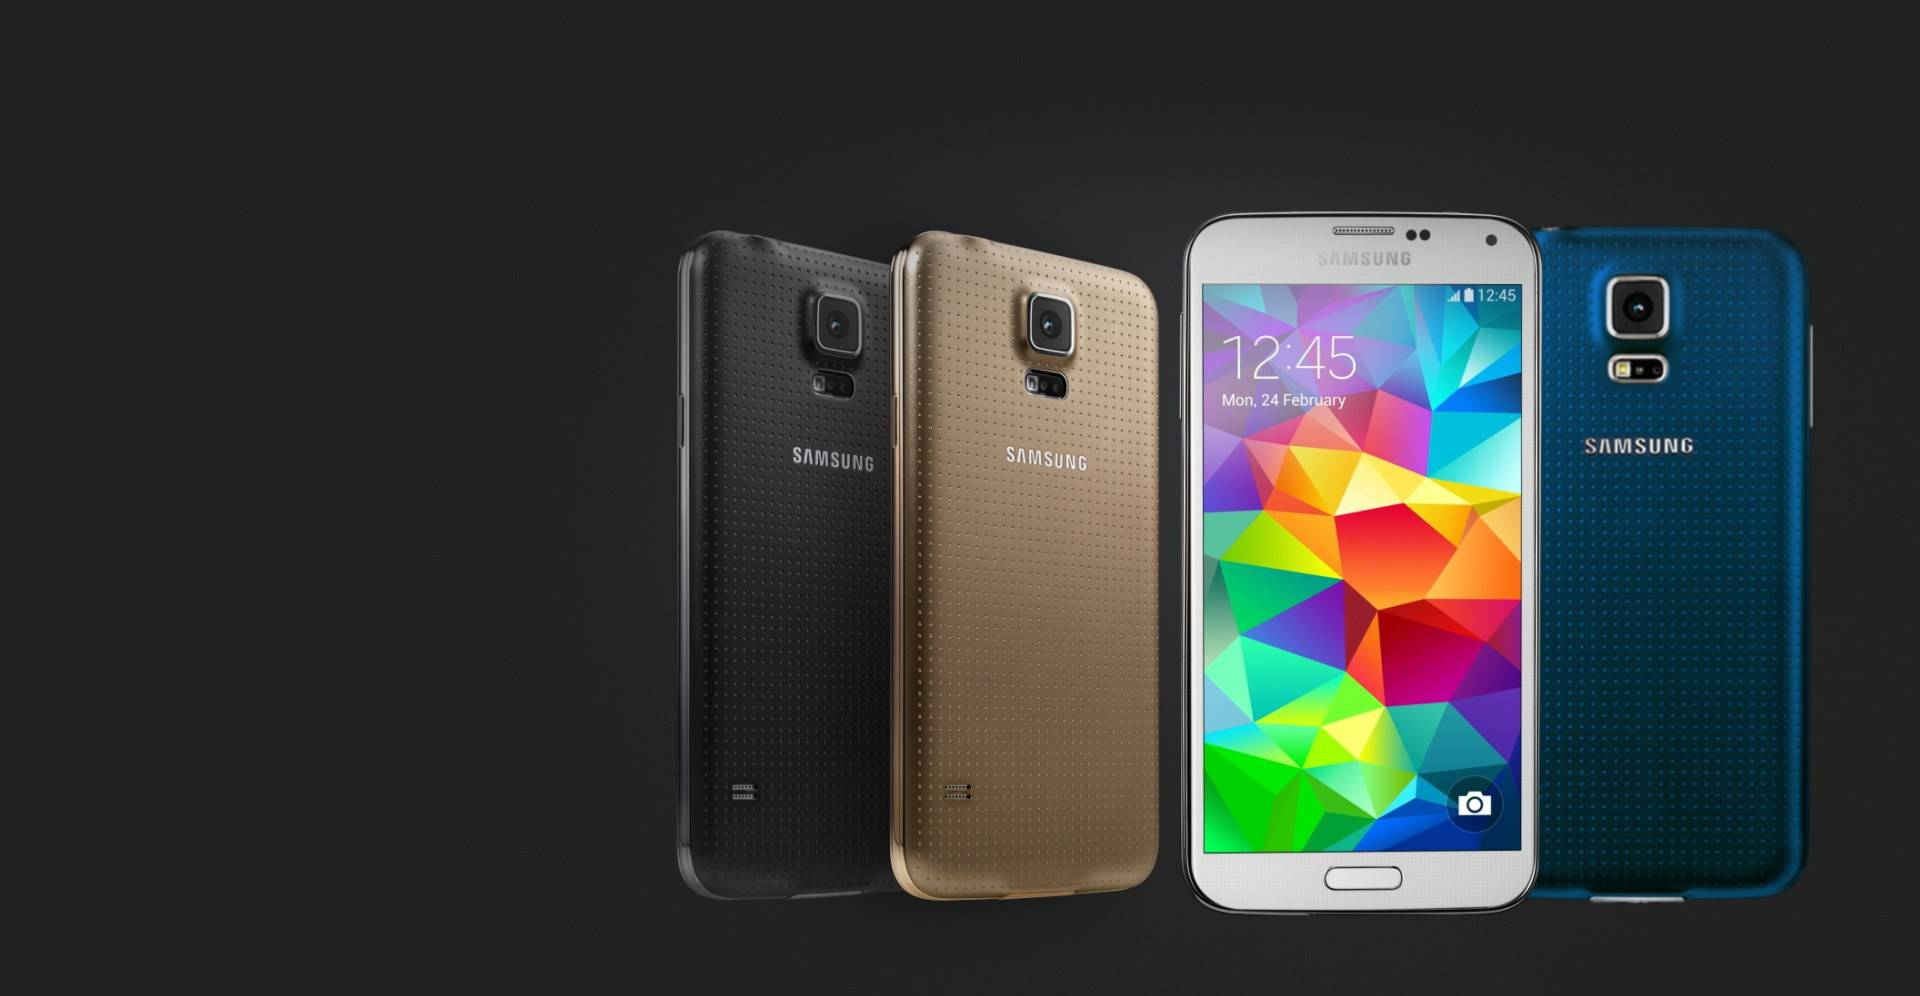 Samsung built a Bitcoin miner out of 40 Galaxy S5 phones, to